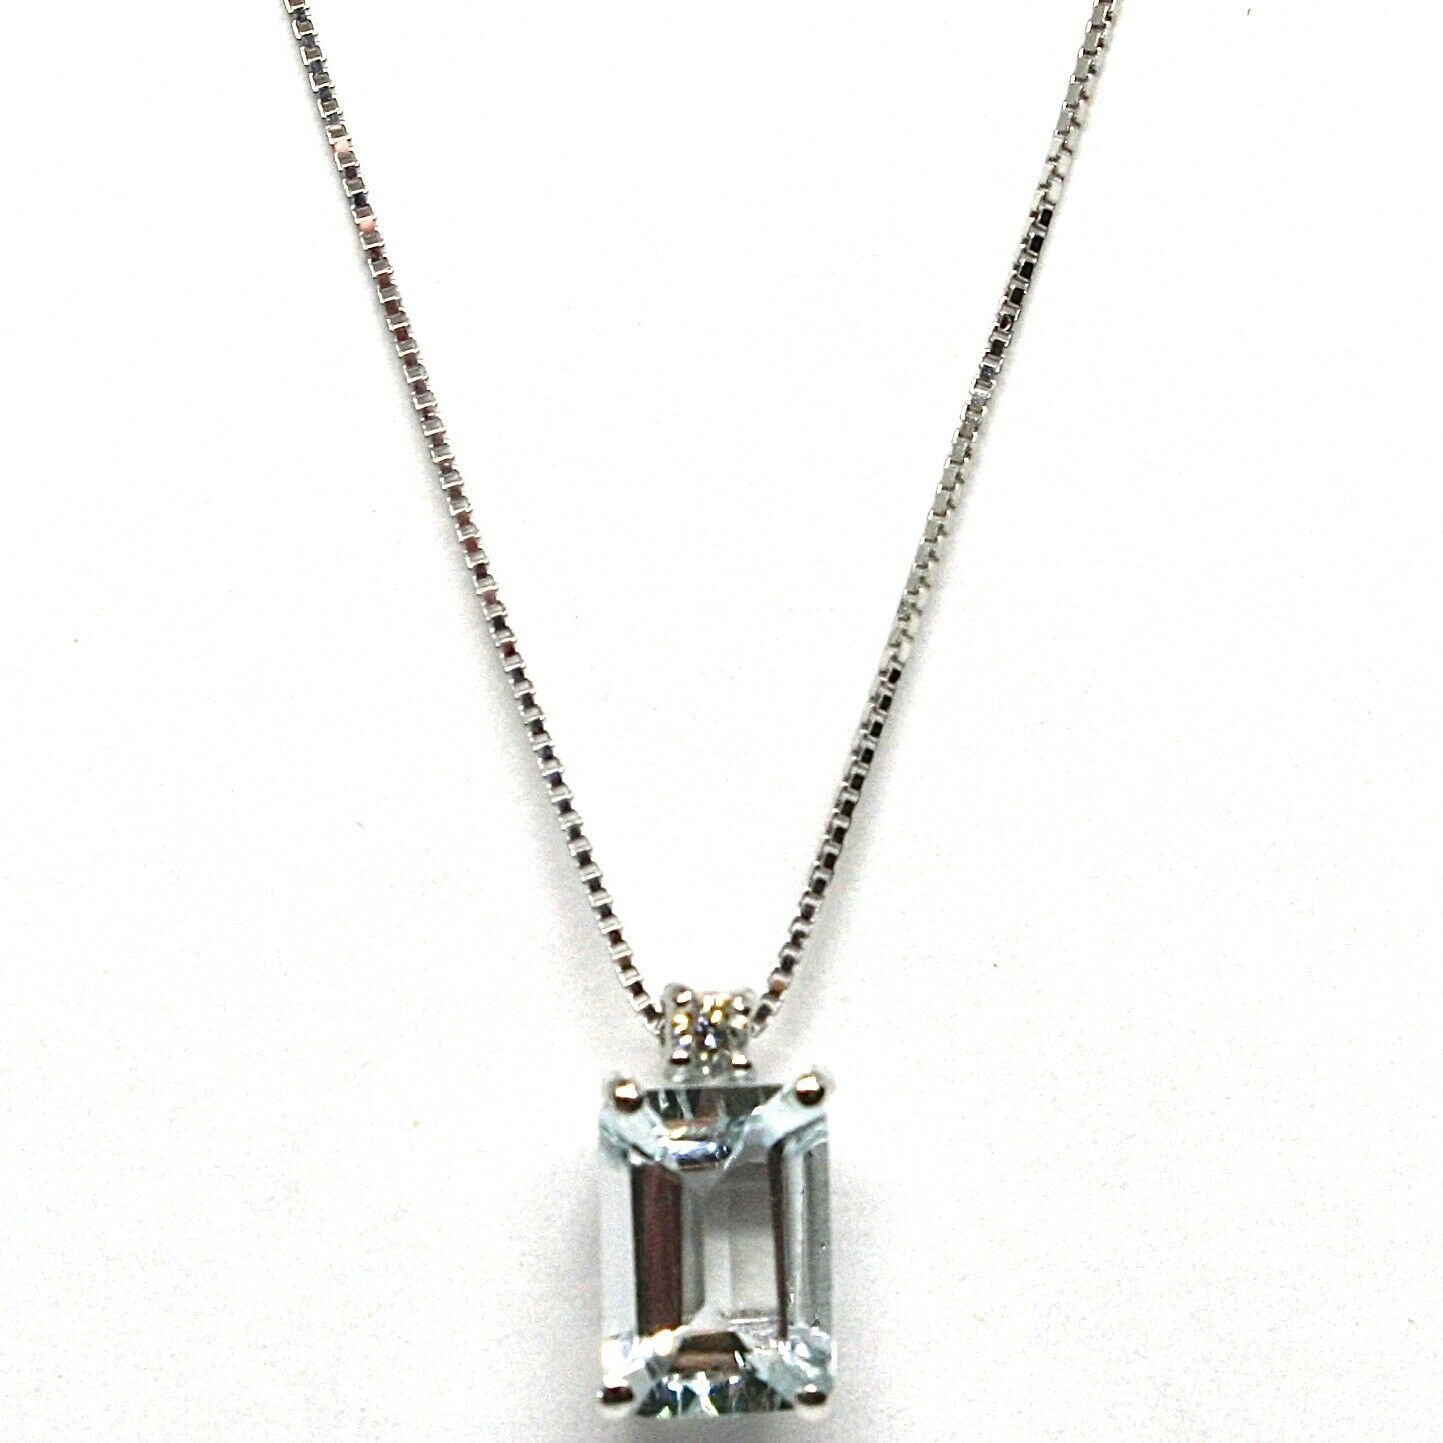 18K WHITE GOLD NECKLACE AQUAMARINE 0.80 EMERALD CUT & DIAMOND, PENDANT & CHAIN